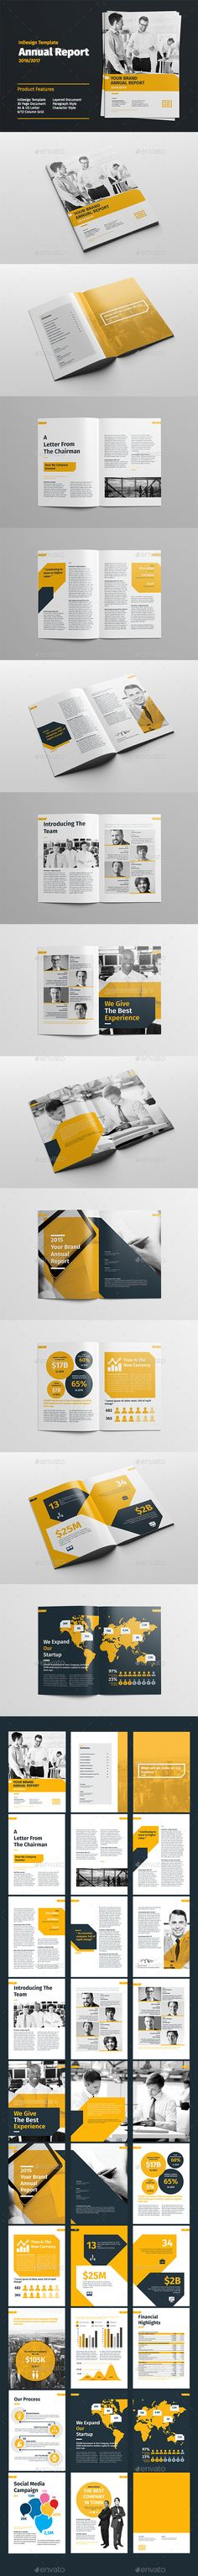 Annual Report Annual reports, Graphics and Brochures - annual report template design